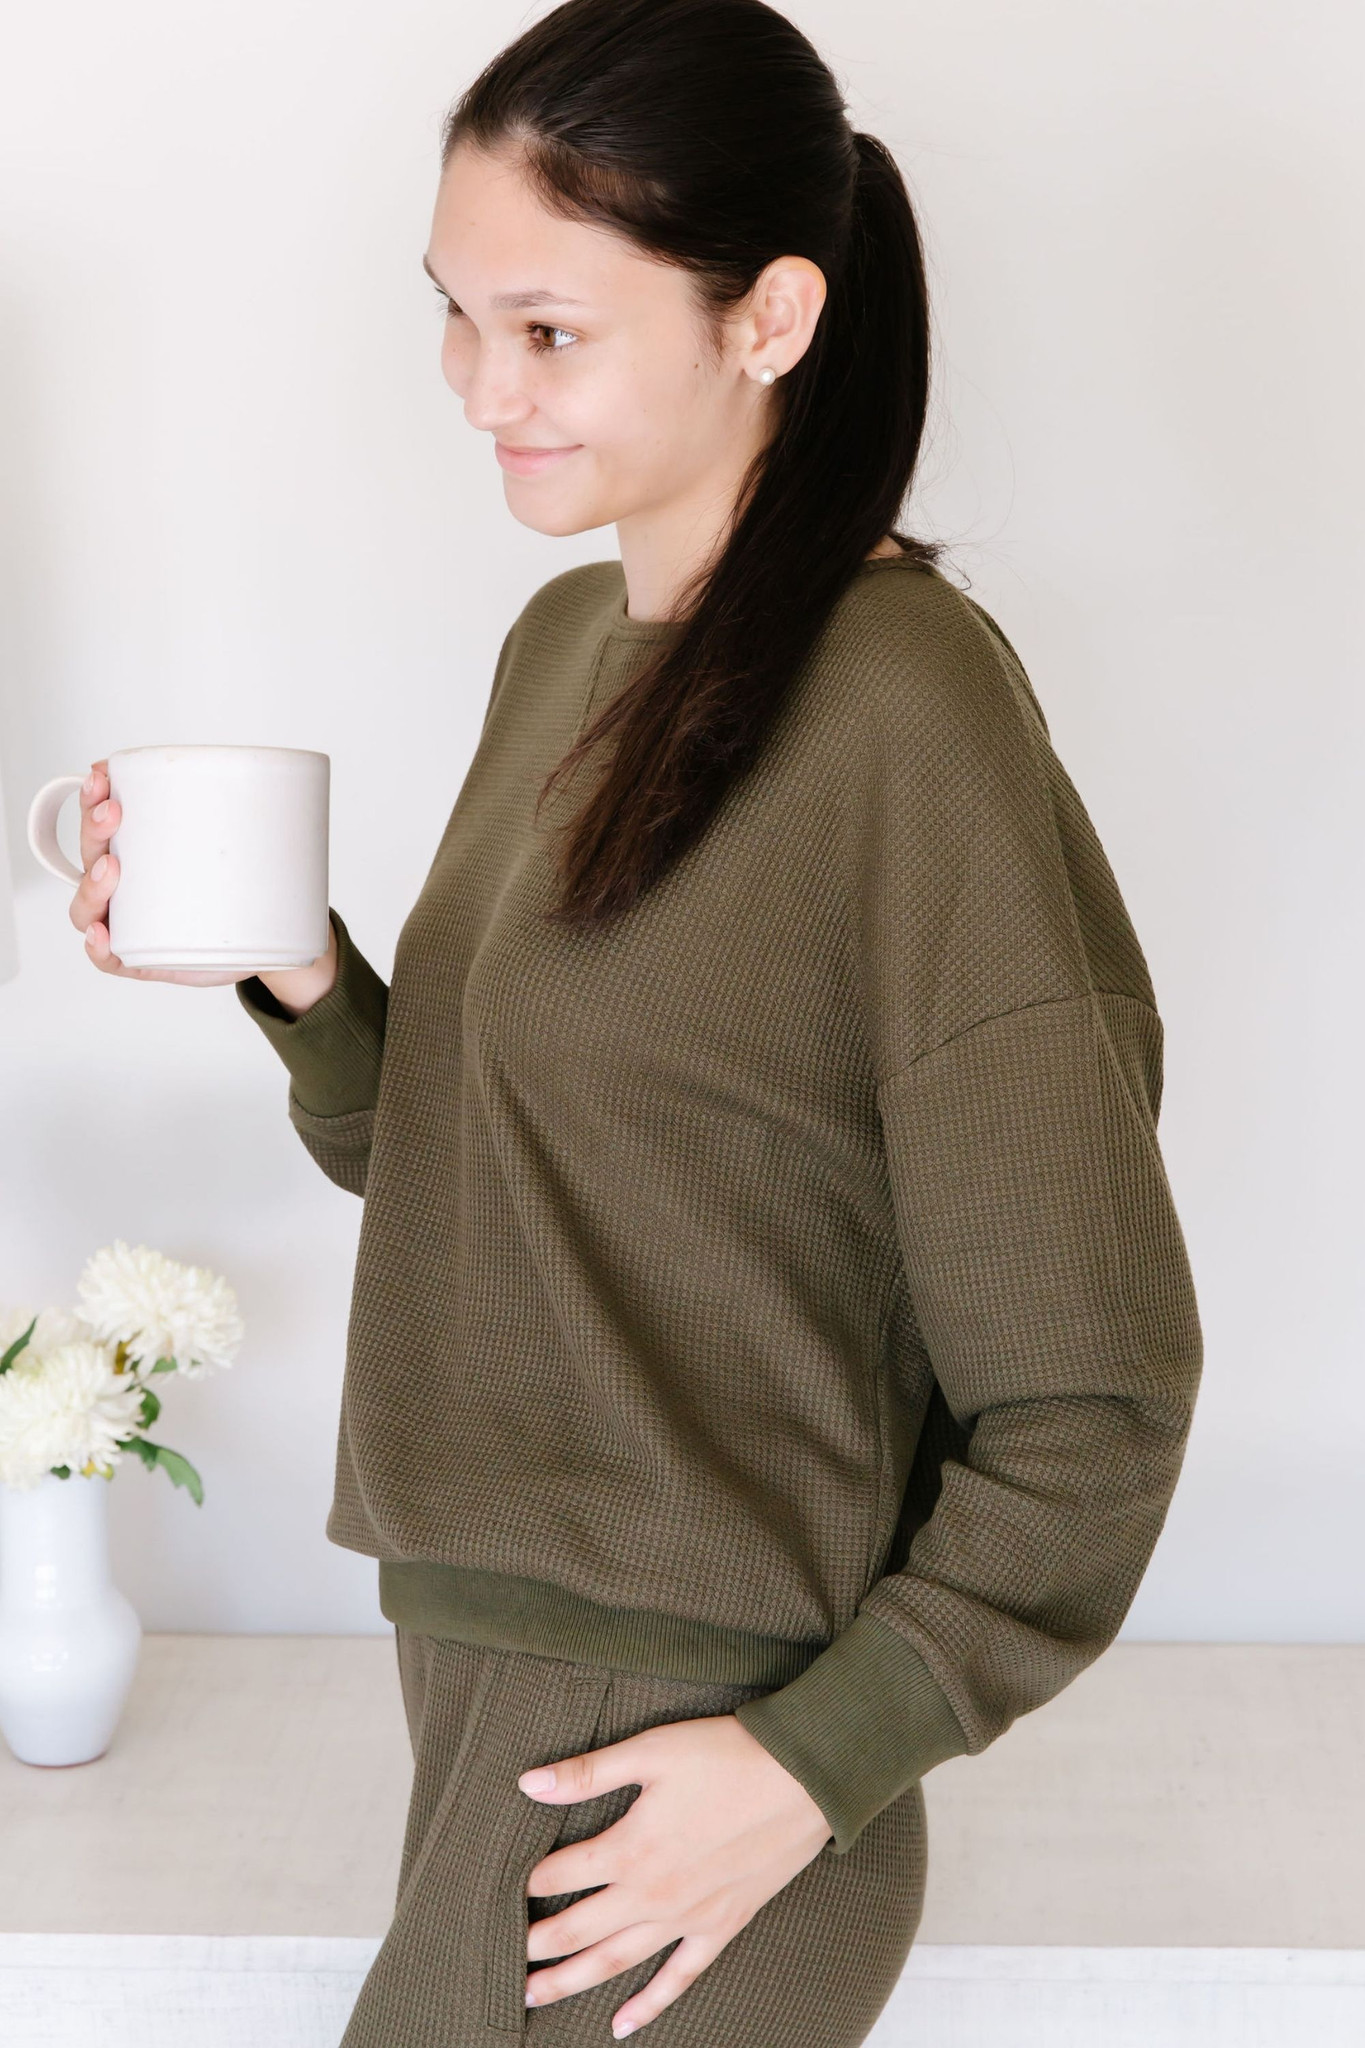 Did somebody say waffle? Listen. Nobody doesn't like waffle fabric. This two piece lounge set features a long sleeve crew neck top, with cuff sleeves, and a long pair of loose tapered pants. Both comfortable and fashionable, you can wear this both at home and around town. You know what we will be wearing this season.